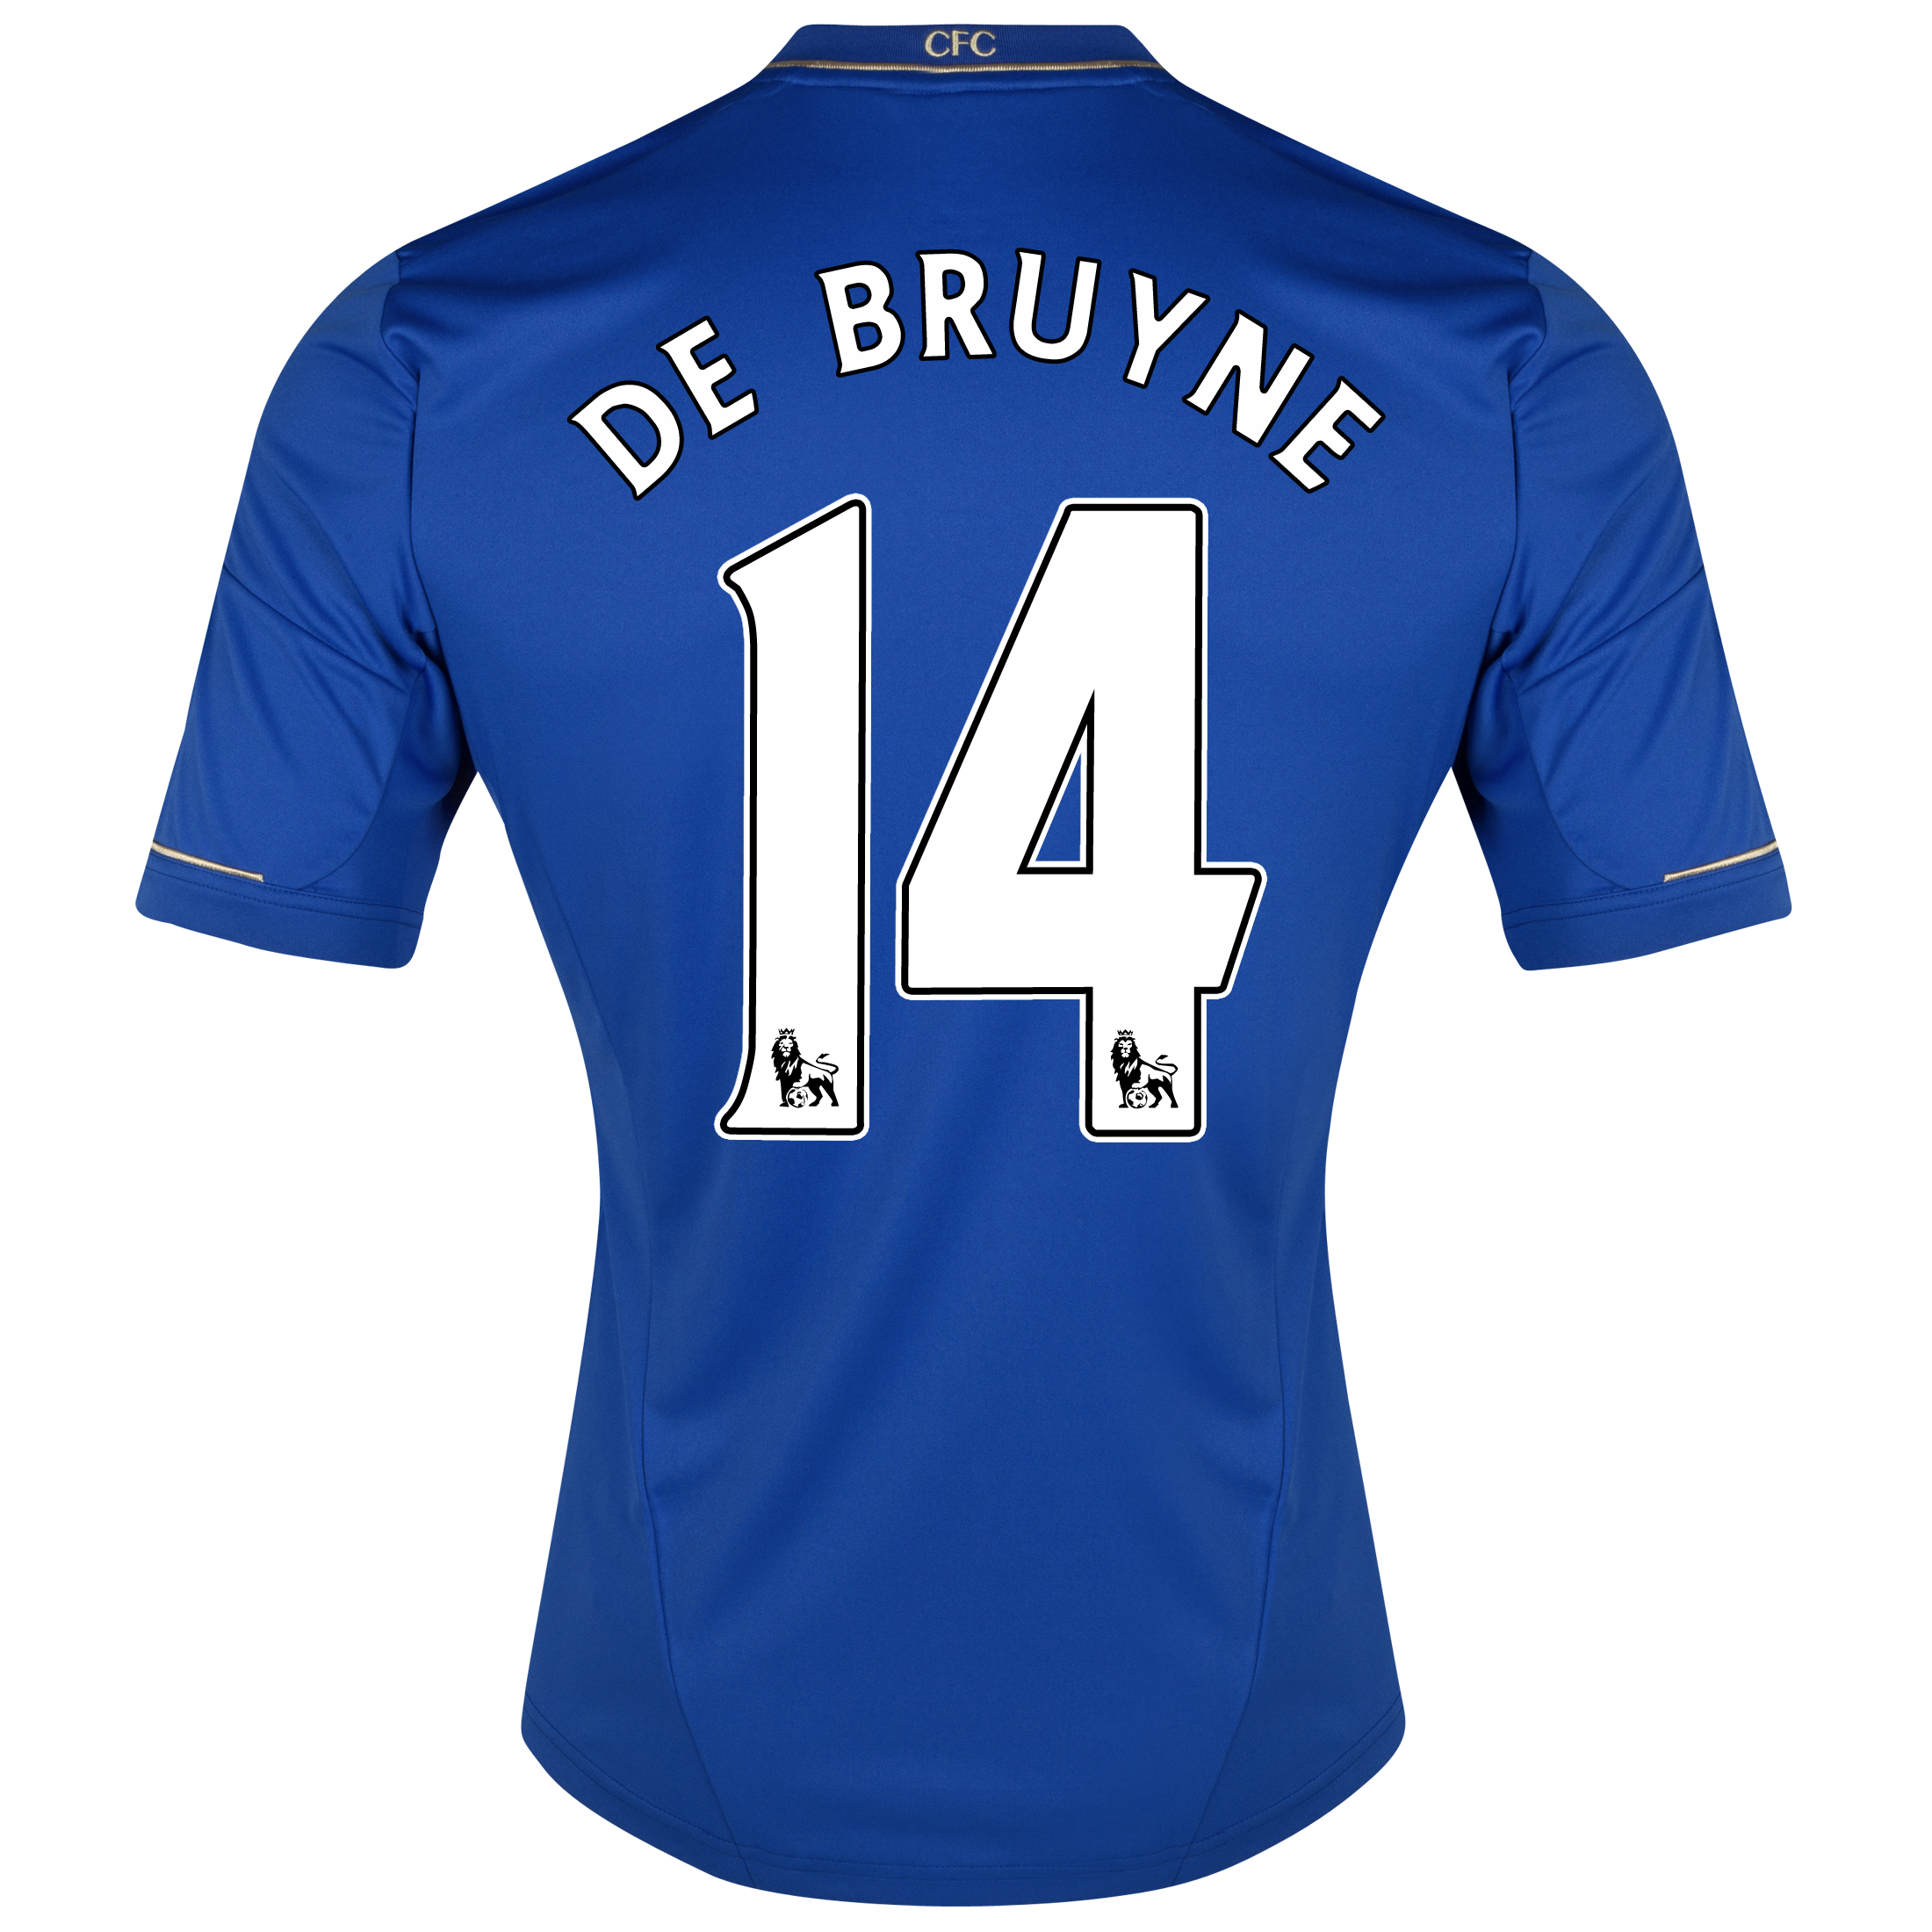 Chelsea Home Shirt 2012/13 with De Bruyne 14 printing